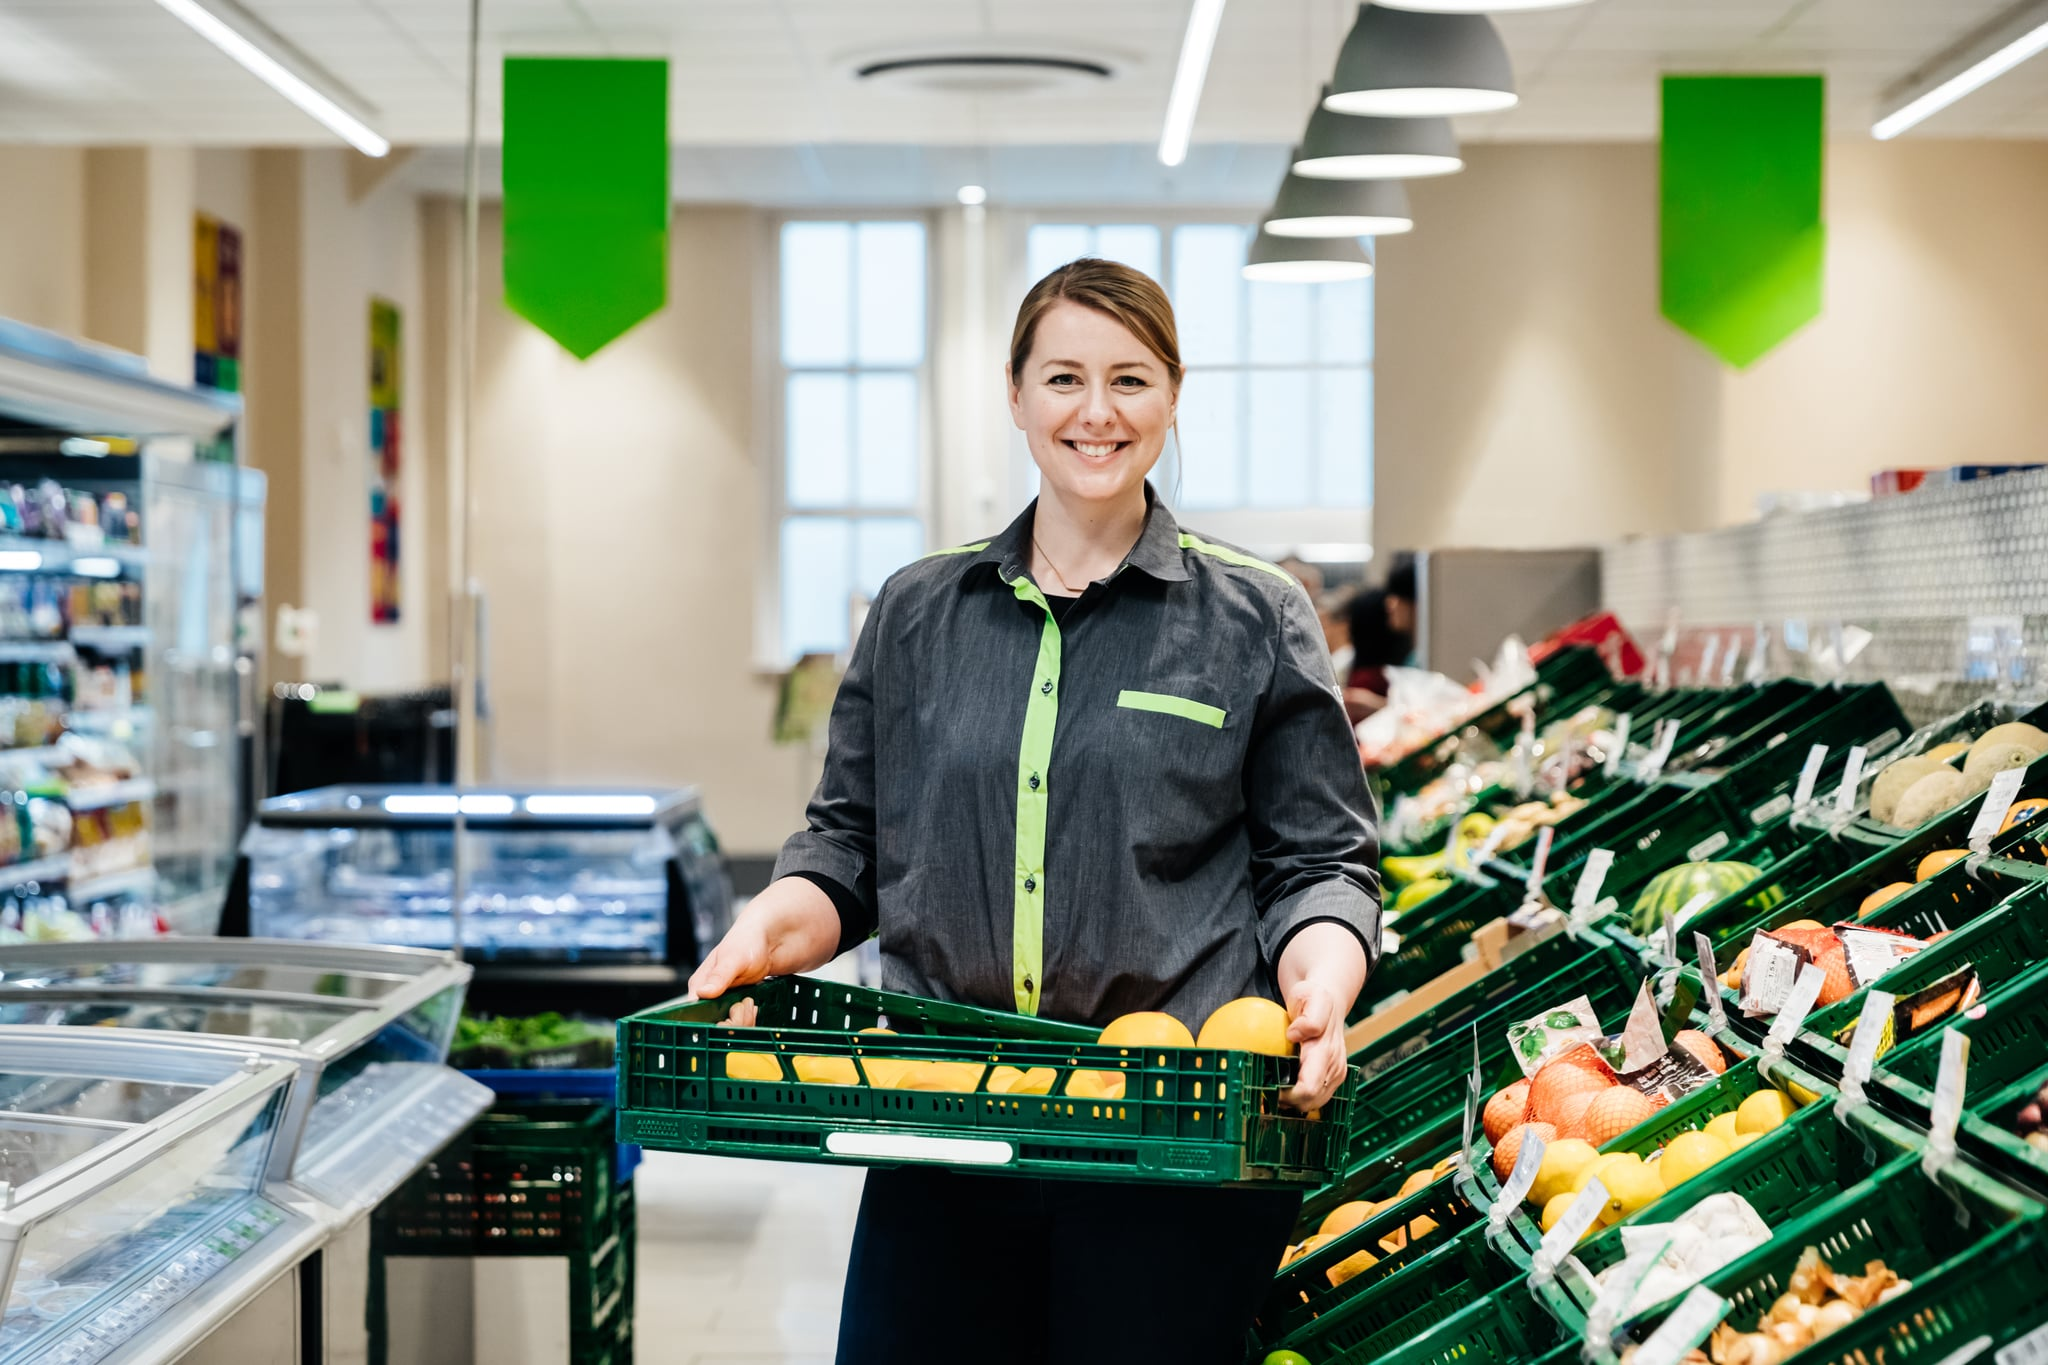 A portrait of a supermarket employee smiling and holding a crate of fruit.